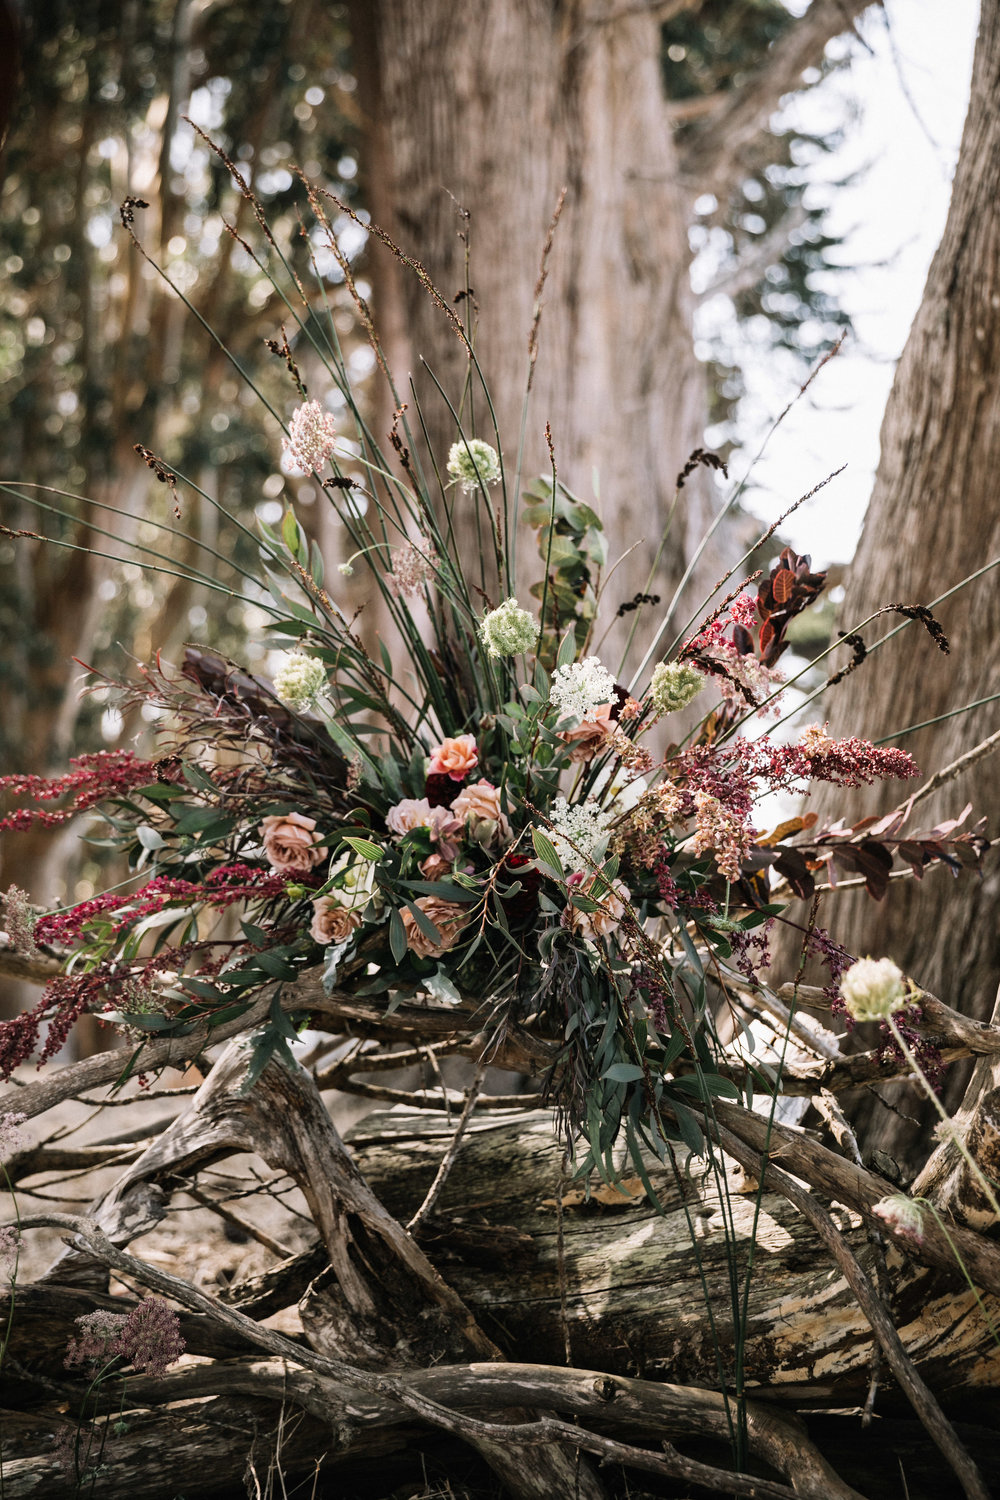 Elegant and wild ceremony arrangement by Venn Floral photographed by Lucille Lawrence in West Marin at Straus Home Ranch.